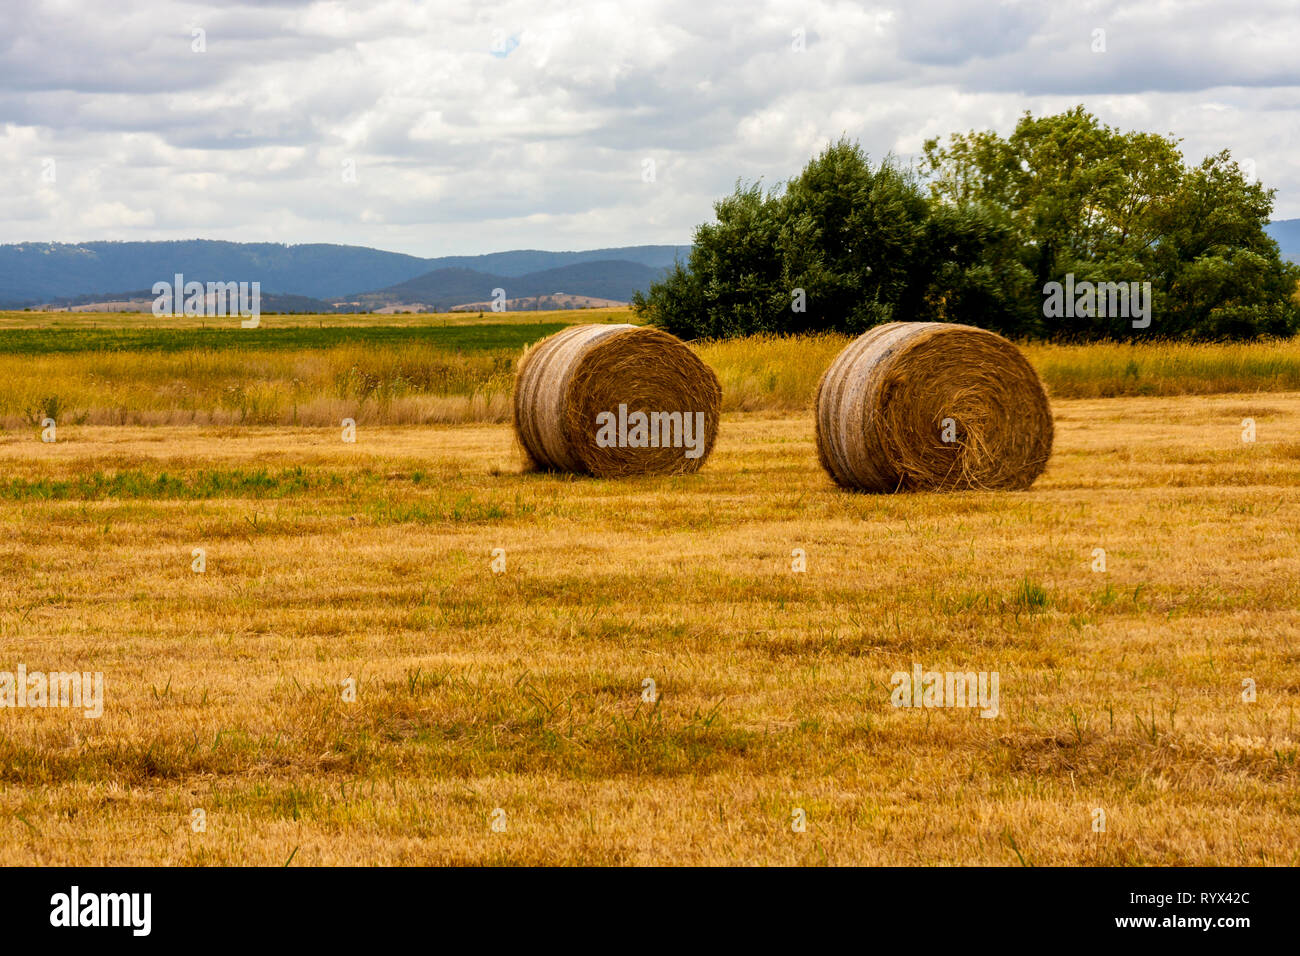 Yellow ripe haystacks of wheat, field in the South Australia. Rural landscape. - Stock Image